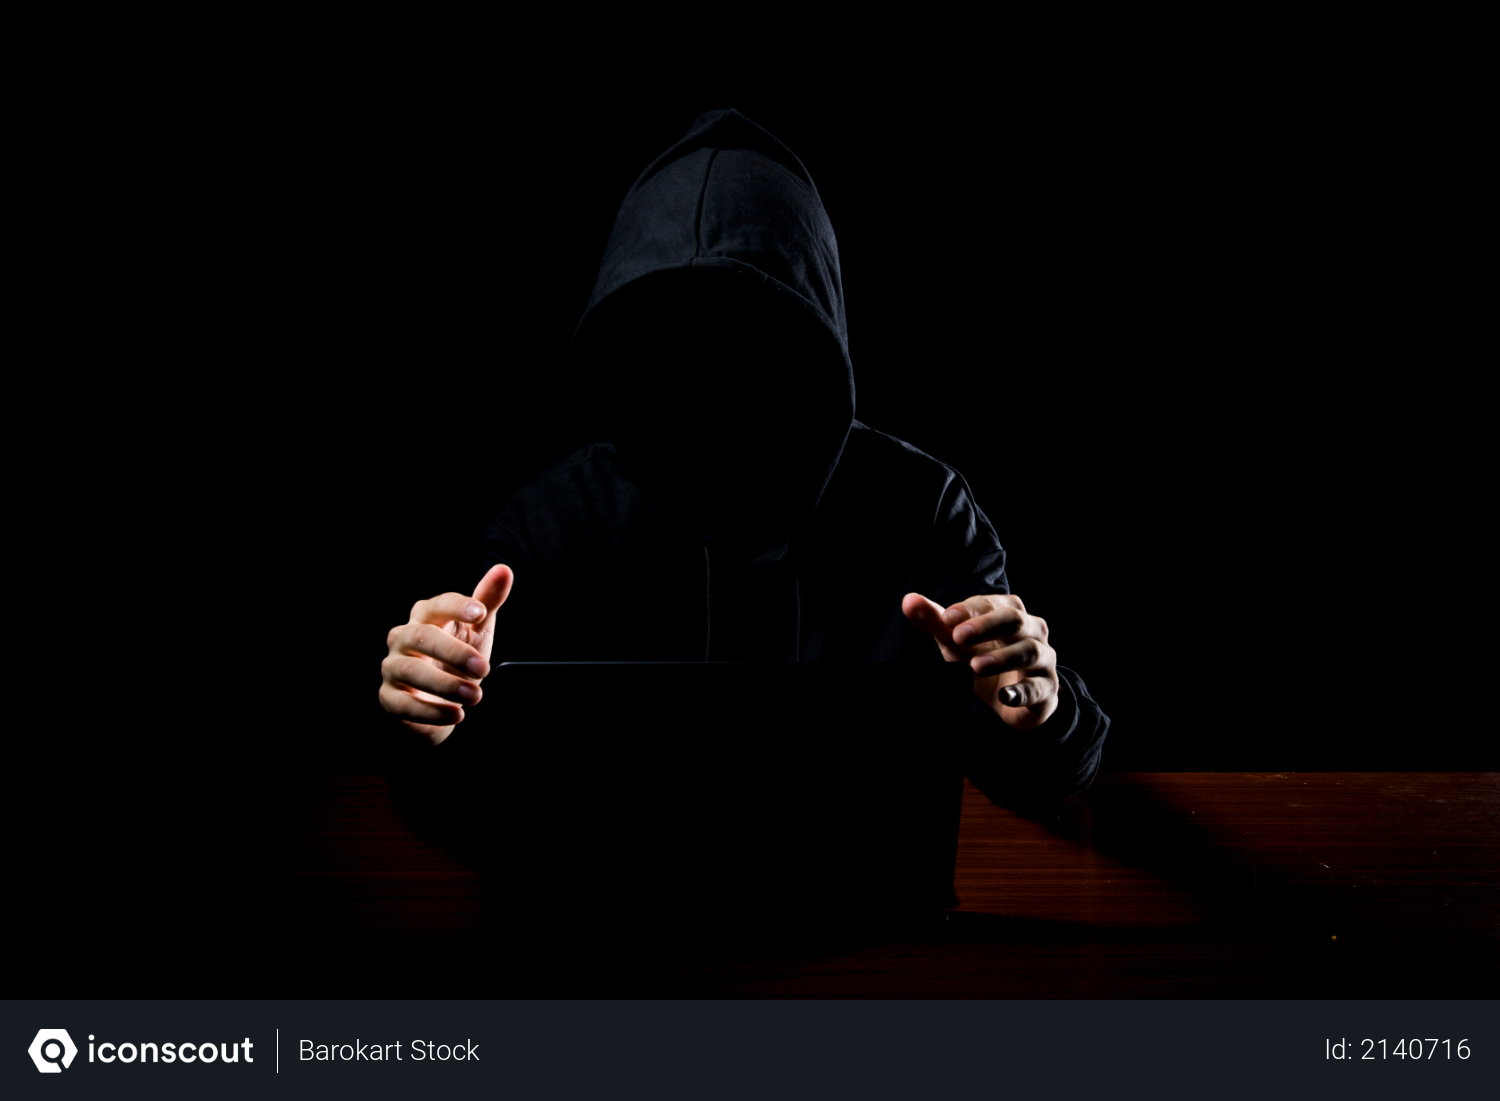 Hacker wearing hoodie with laptop and dark lighting as hacking concept Photo